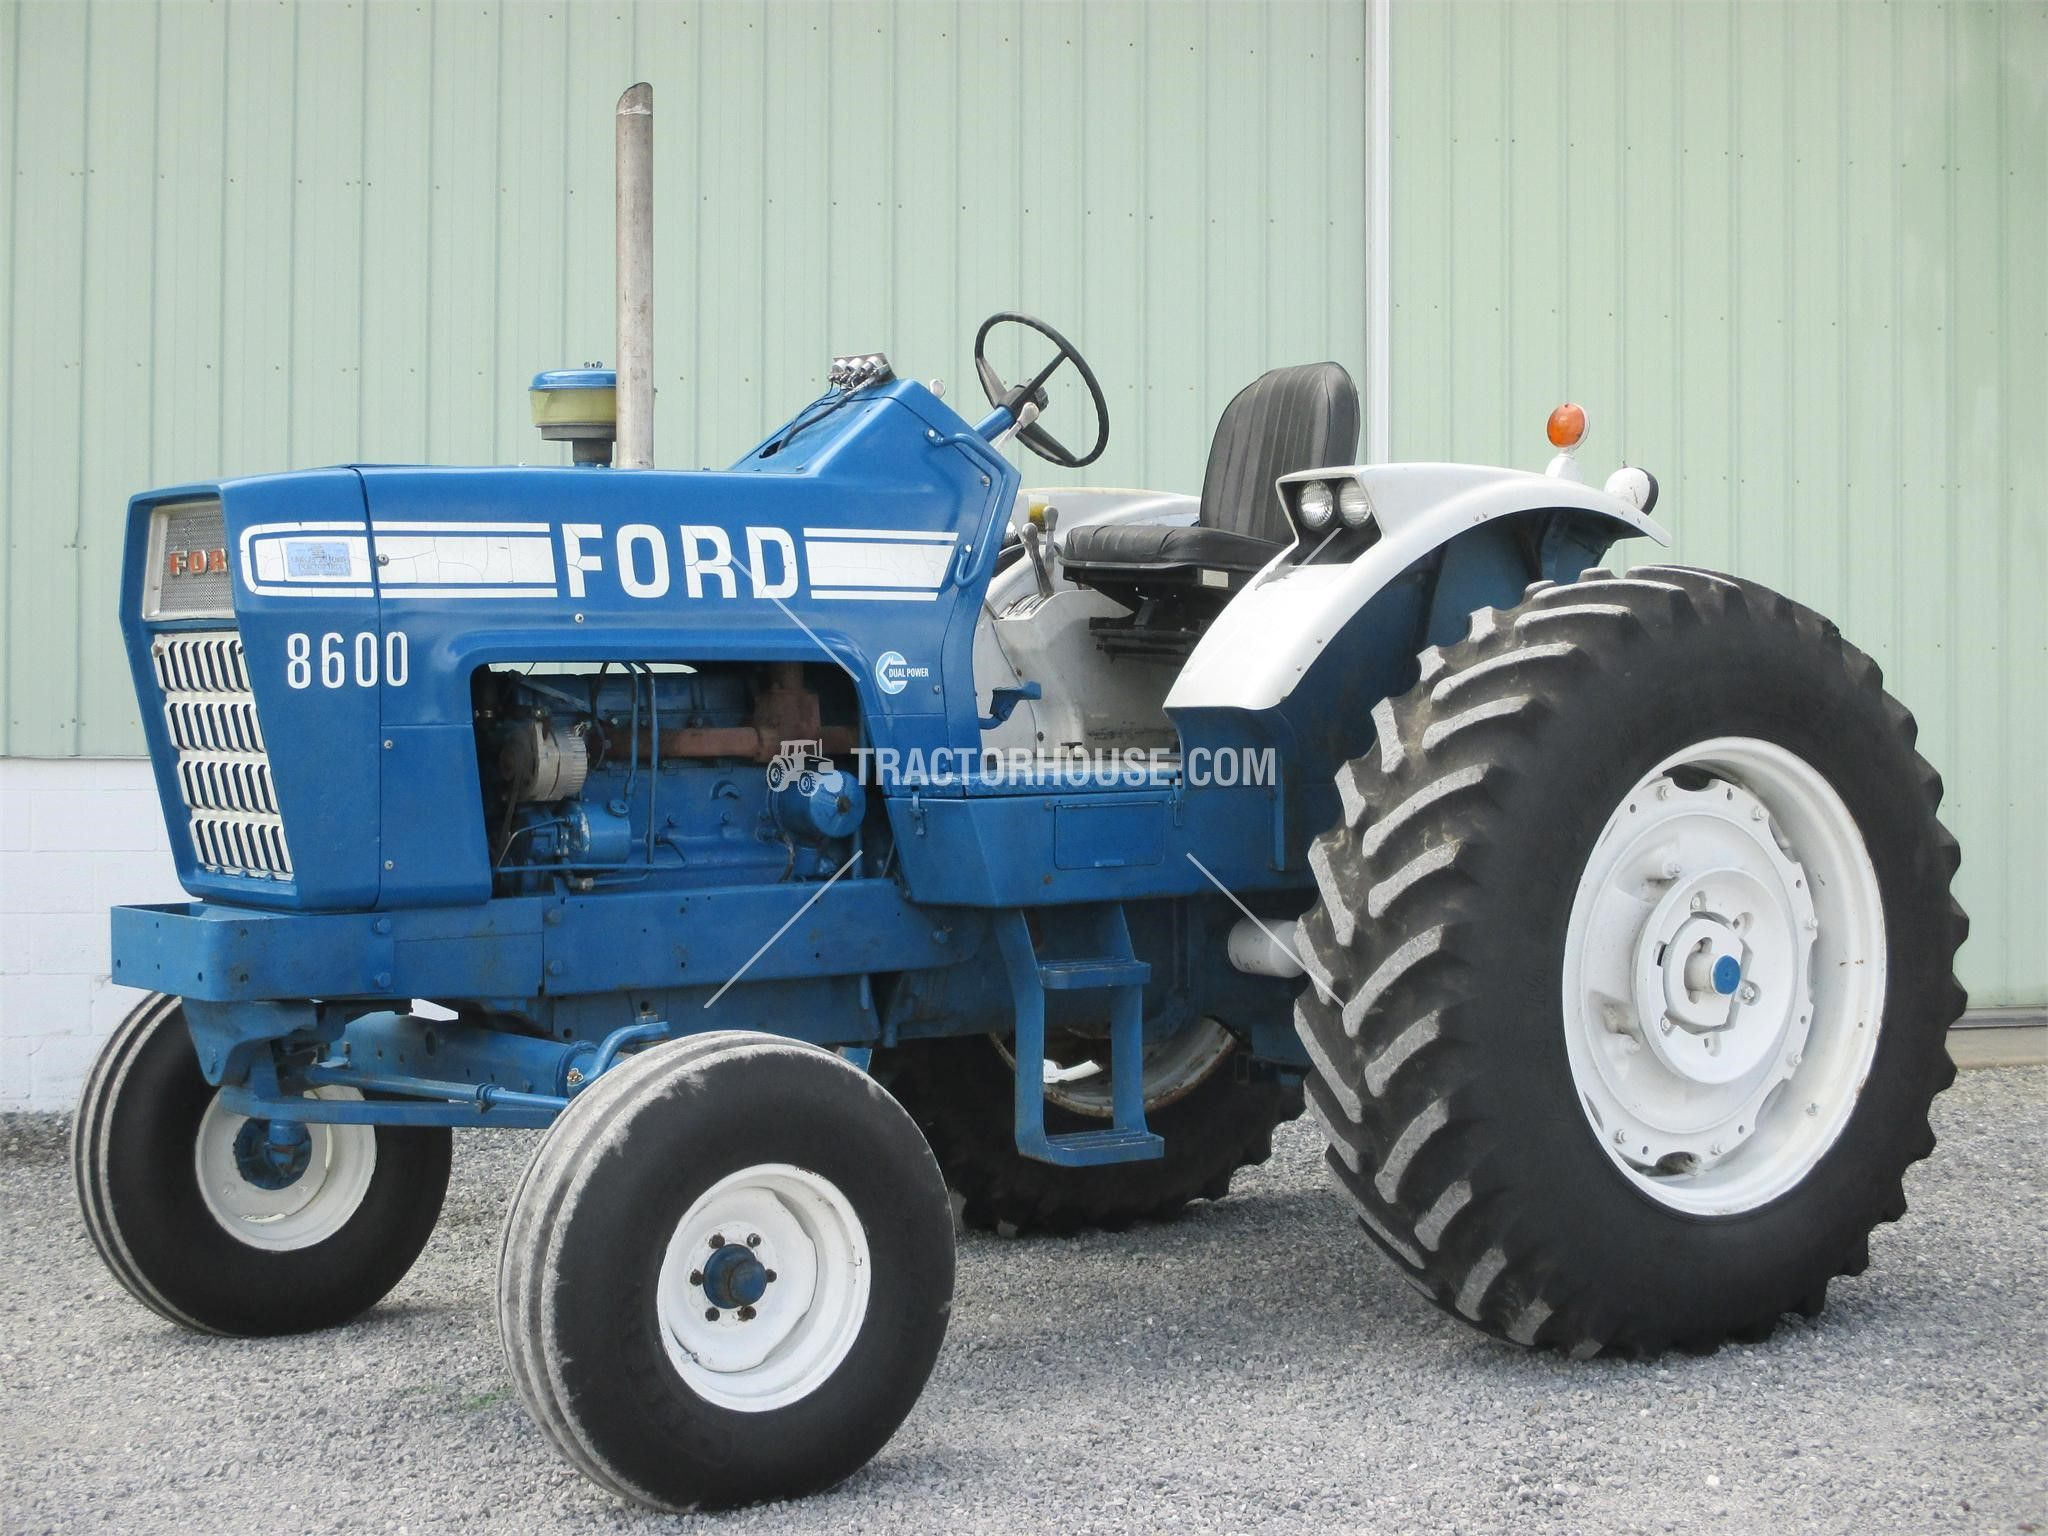 farm antique kenosha mchenry golden collectible ford sale for htm tractors jubilee gurnee illinois tractor chicago